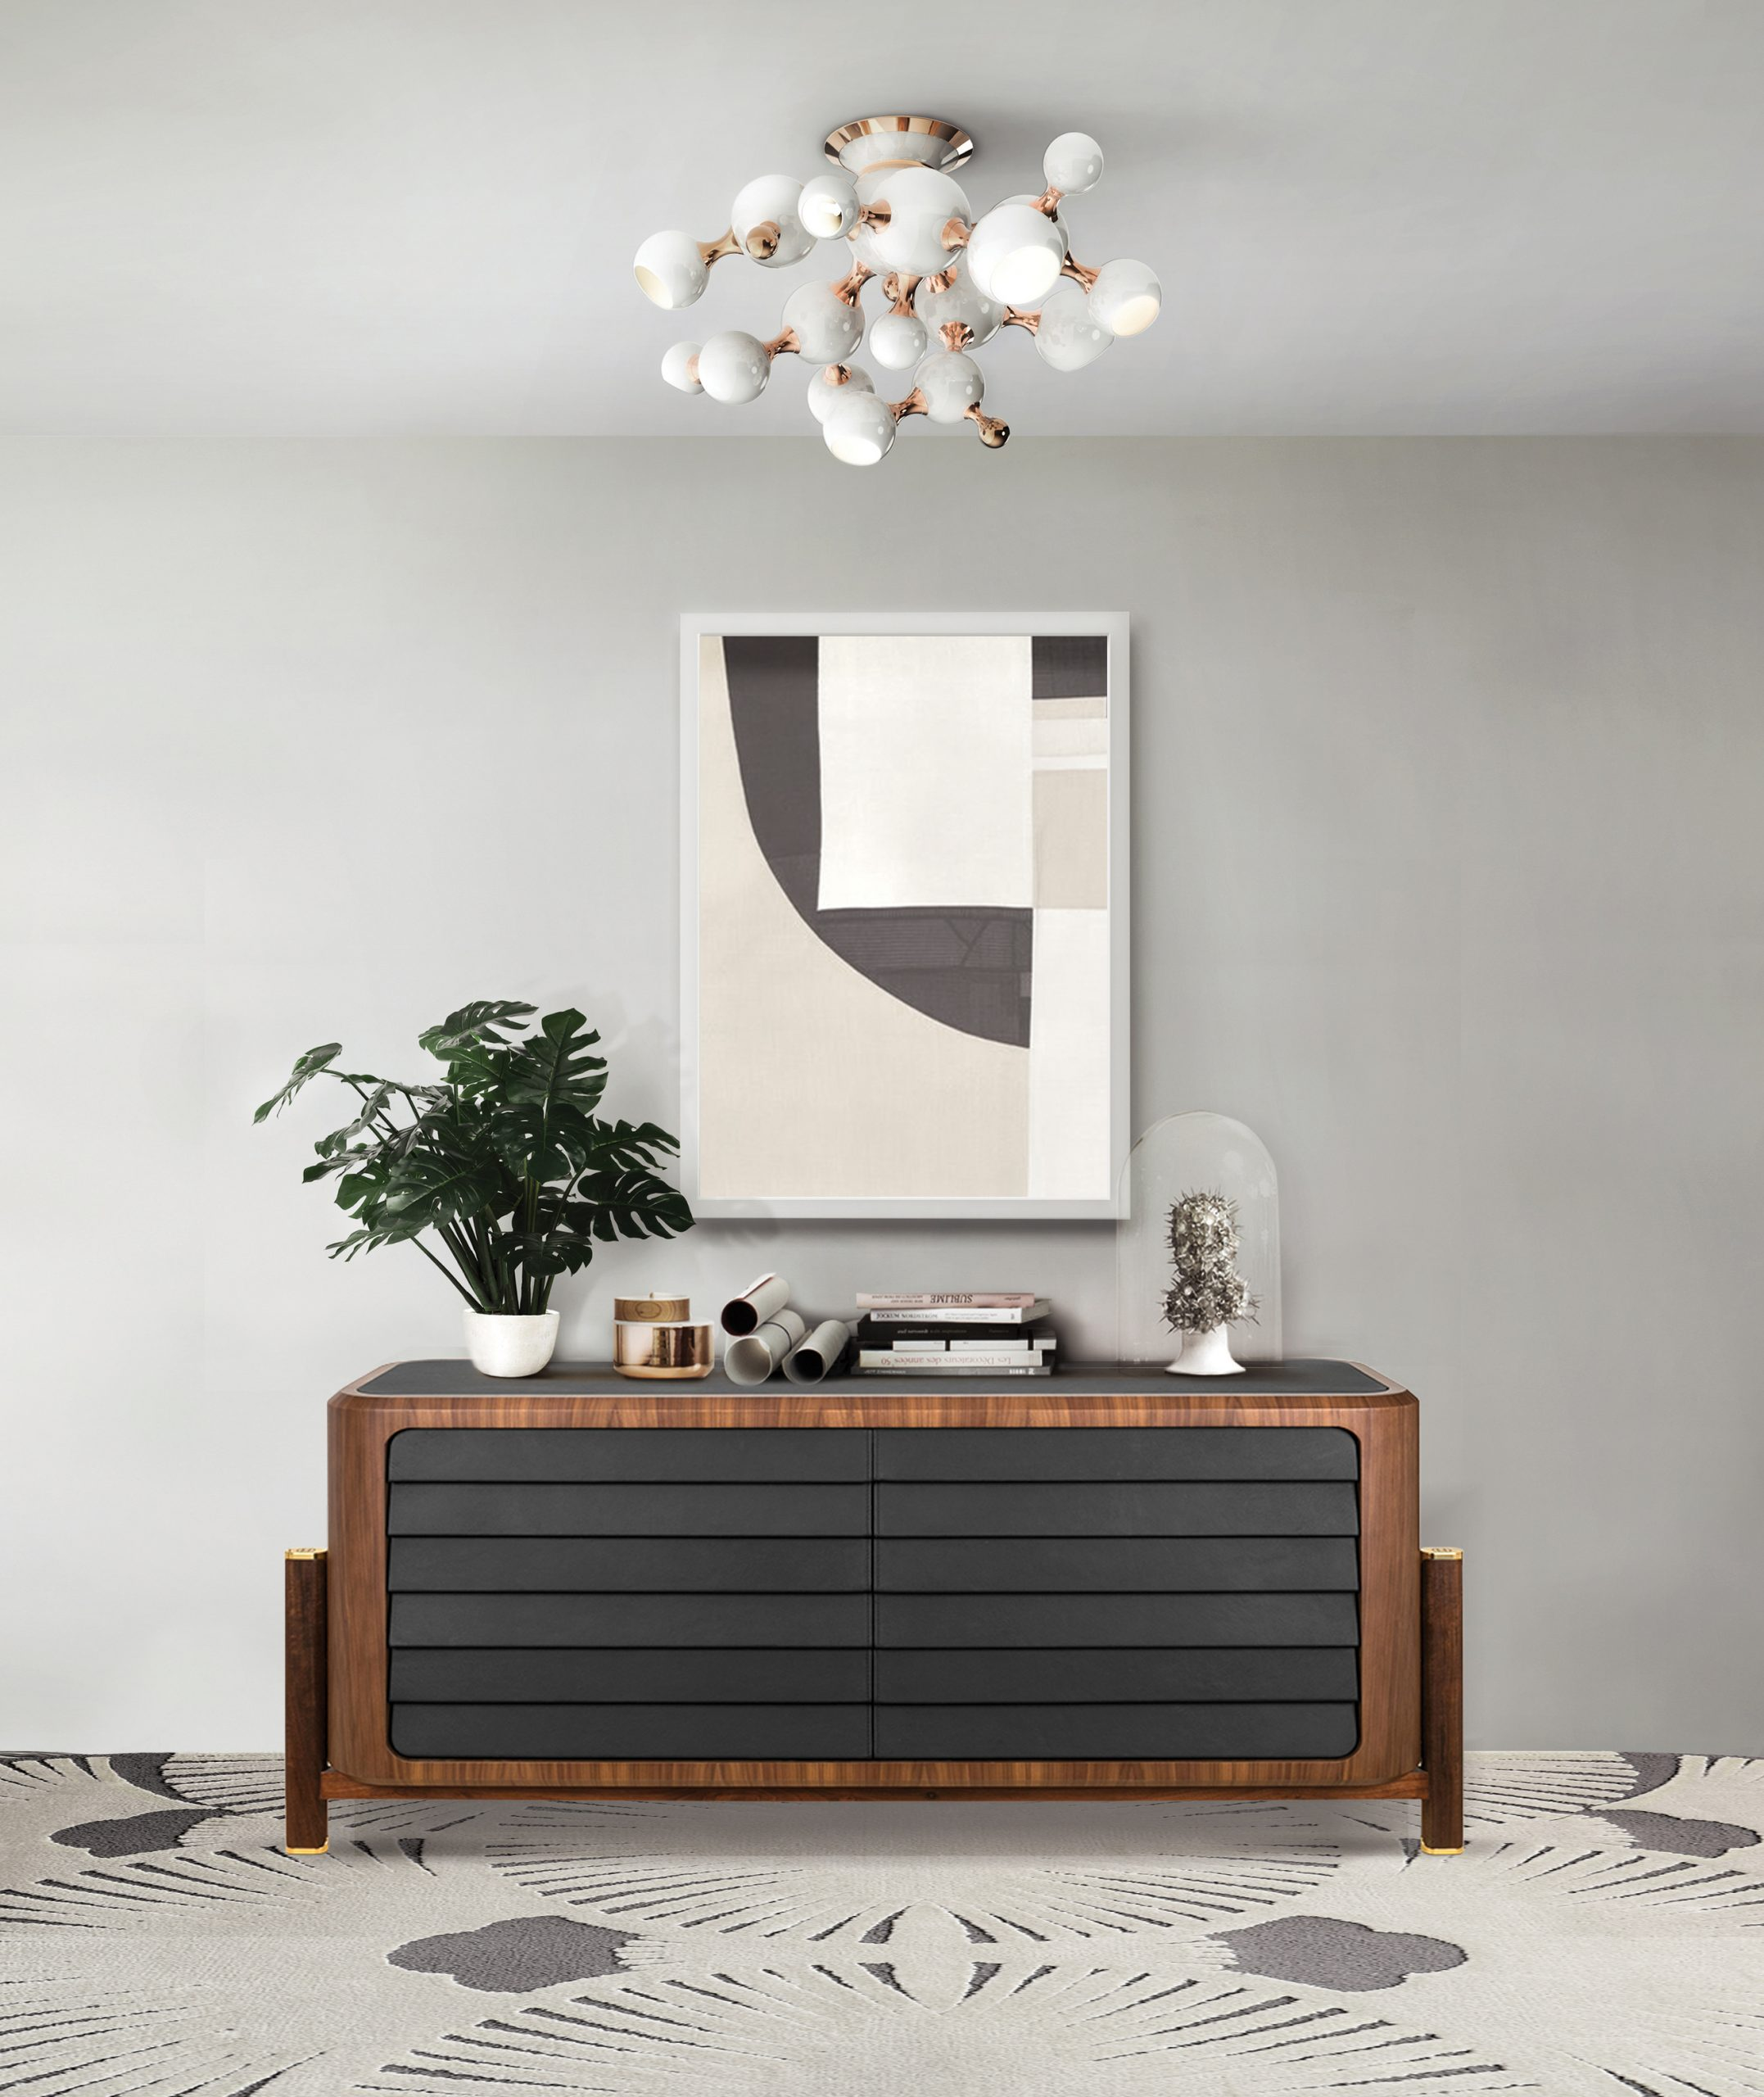 Summer Sales: These 6 Beautiful Lighting Pieces are The Epitome of Modern Mid-Century Style! lighting pieces Summer Sales: These 6 Beautiful Lighting Pieces are The Epitome of Modern Mid-Century Style! 4 scaled